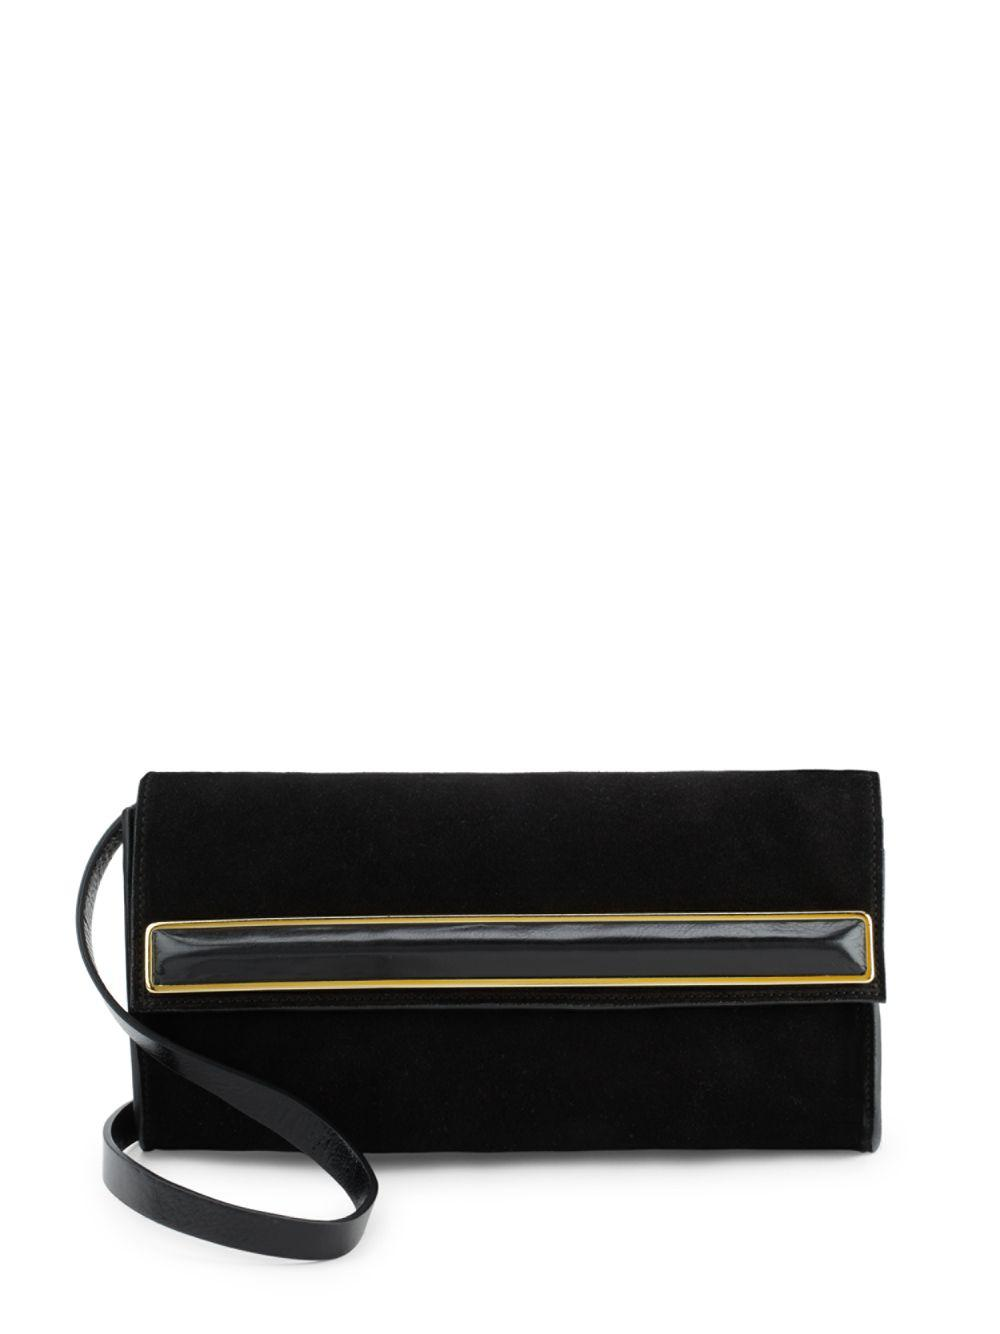 4b532f38855e Lyst - Halston Heritage Small Suede Clutch in Black